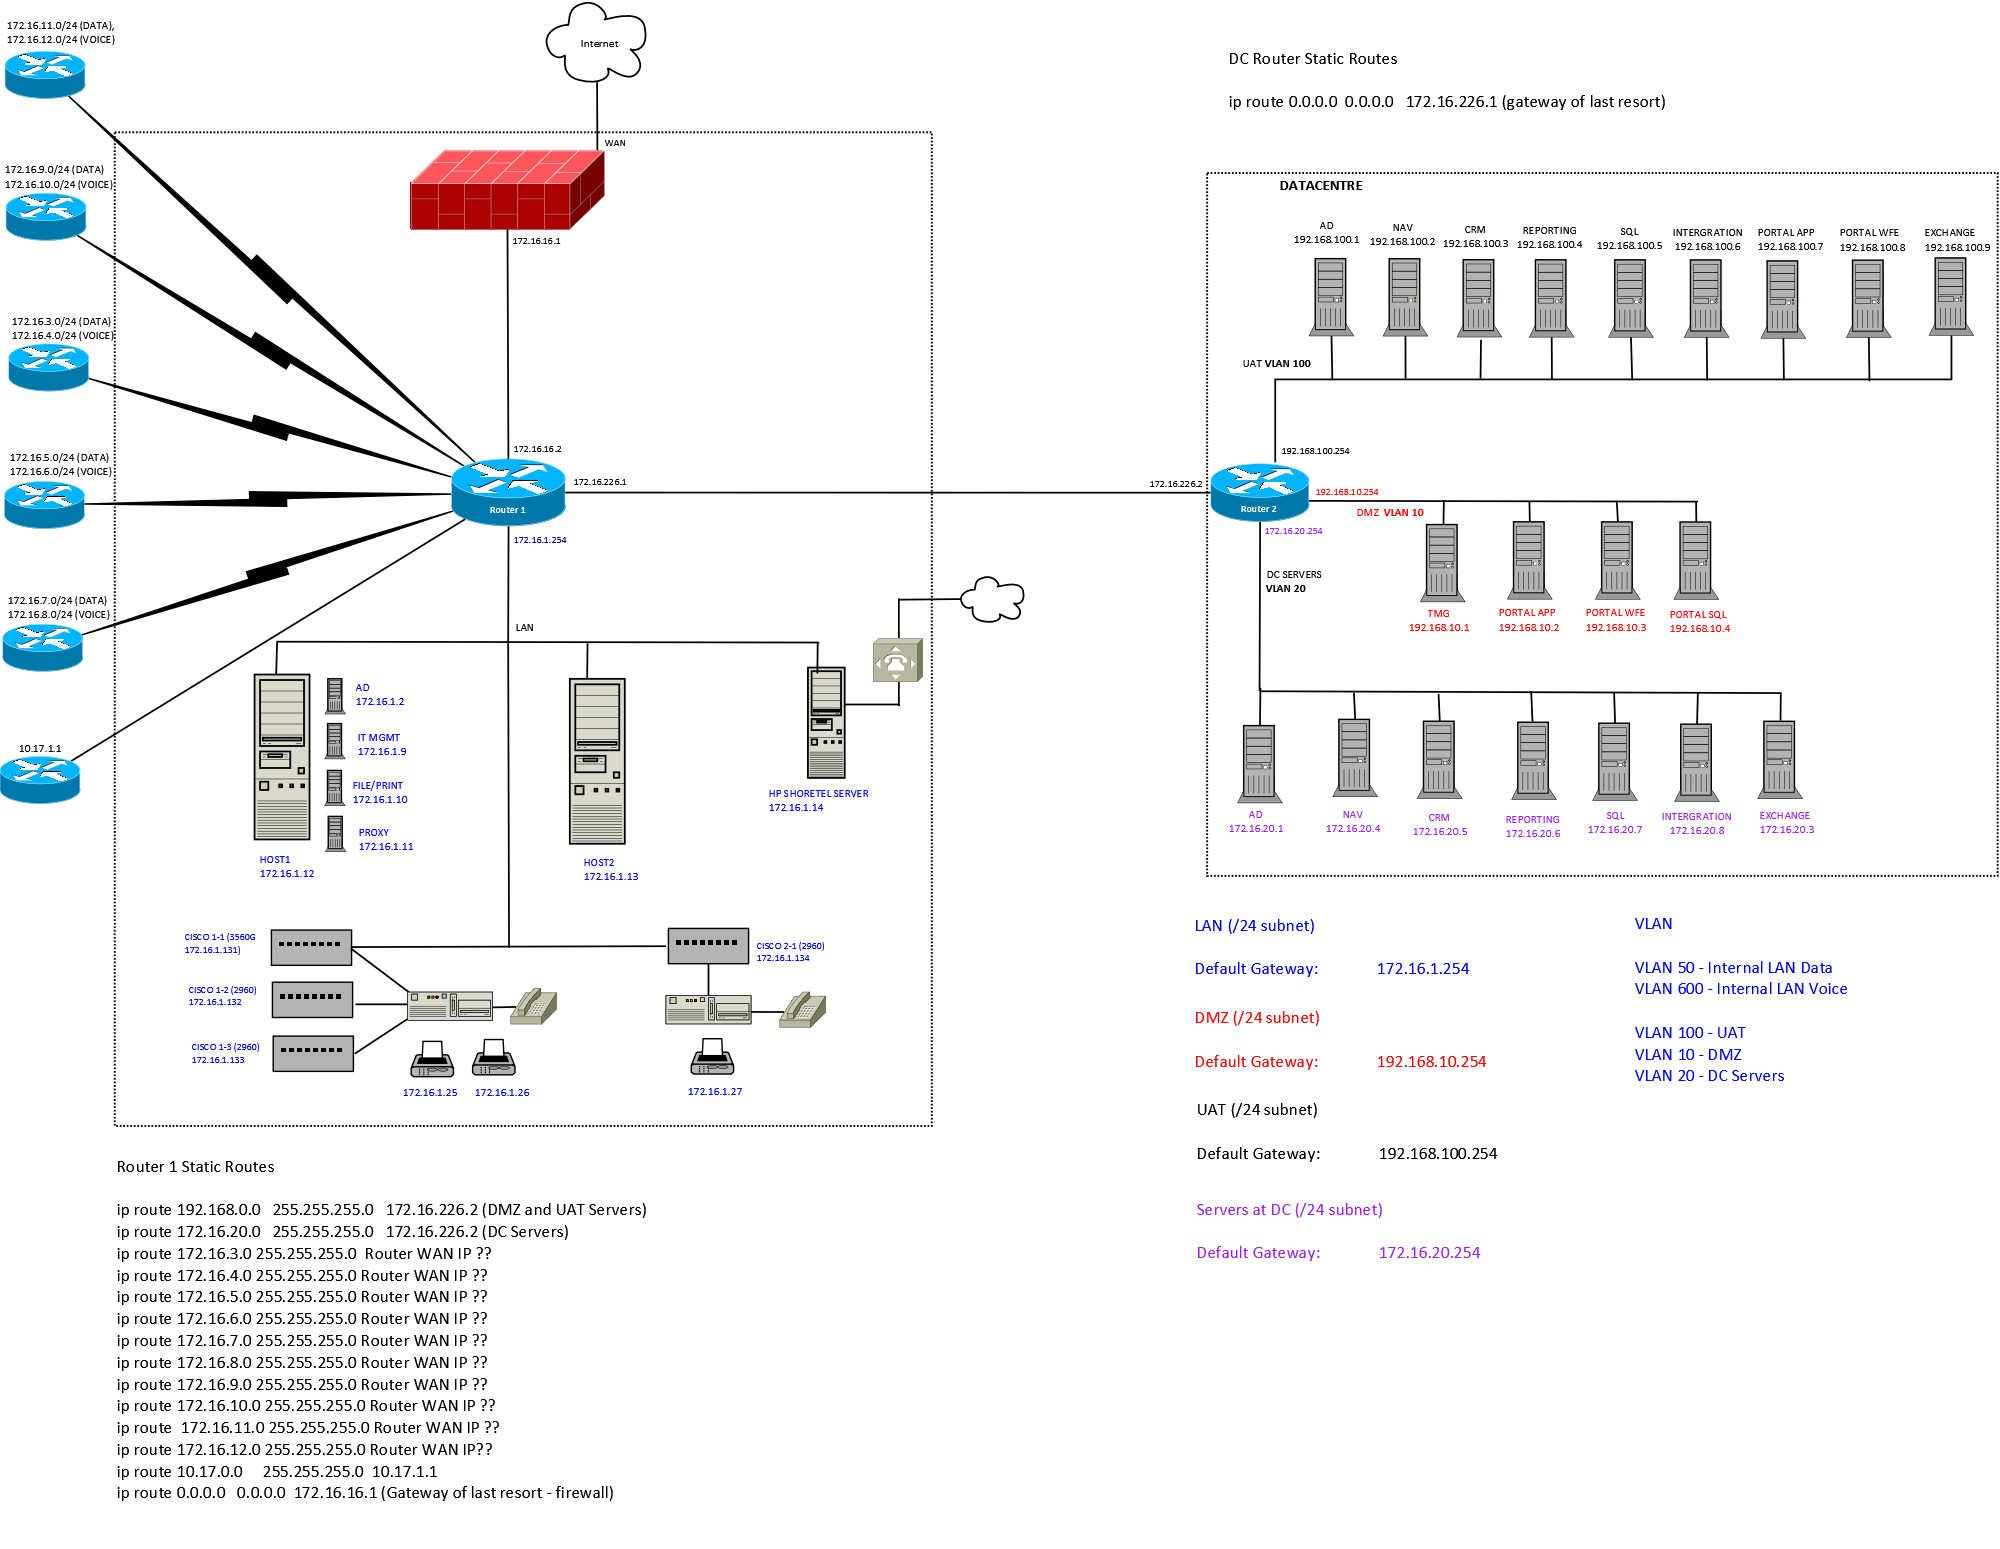 SonicWall and Layer 3 Switch setup